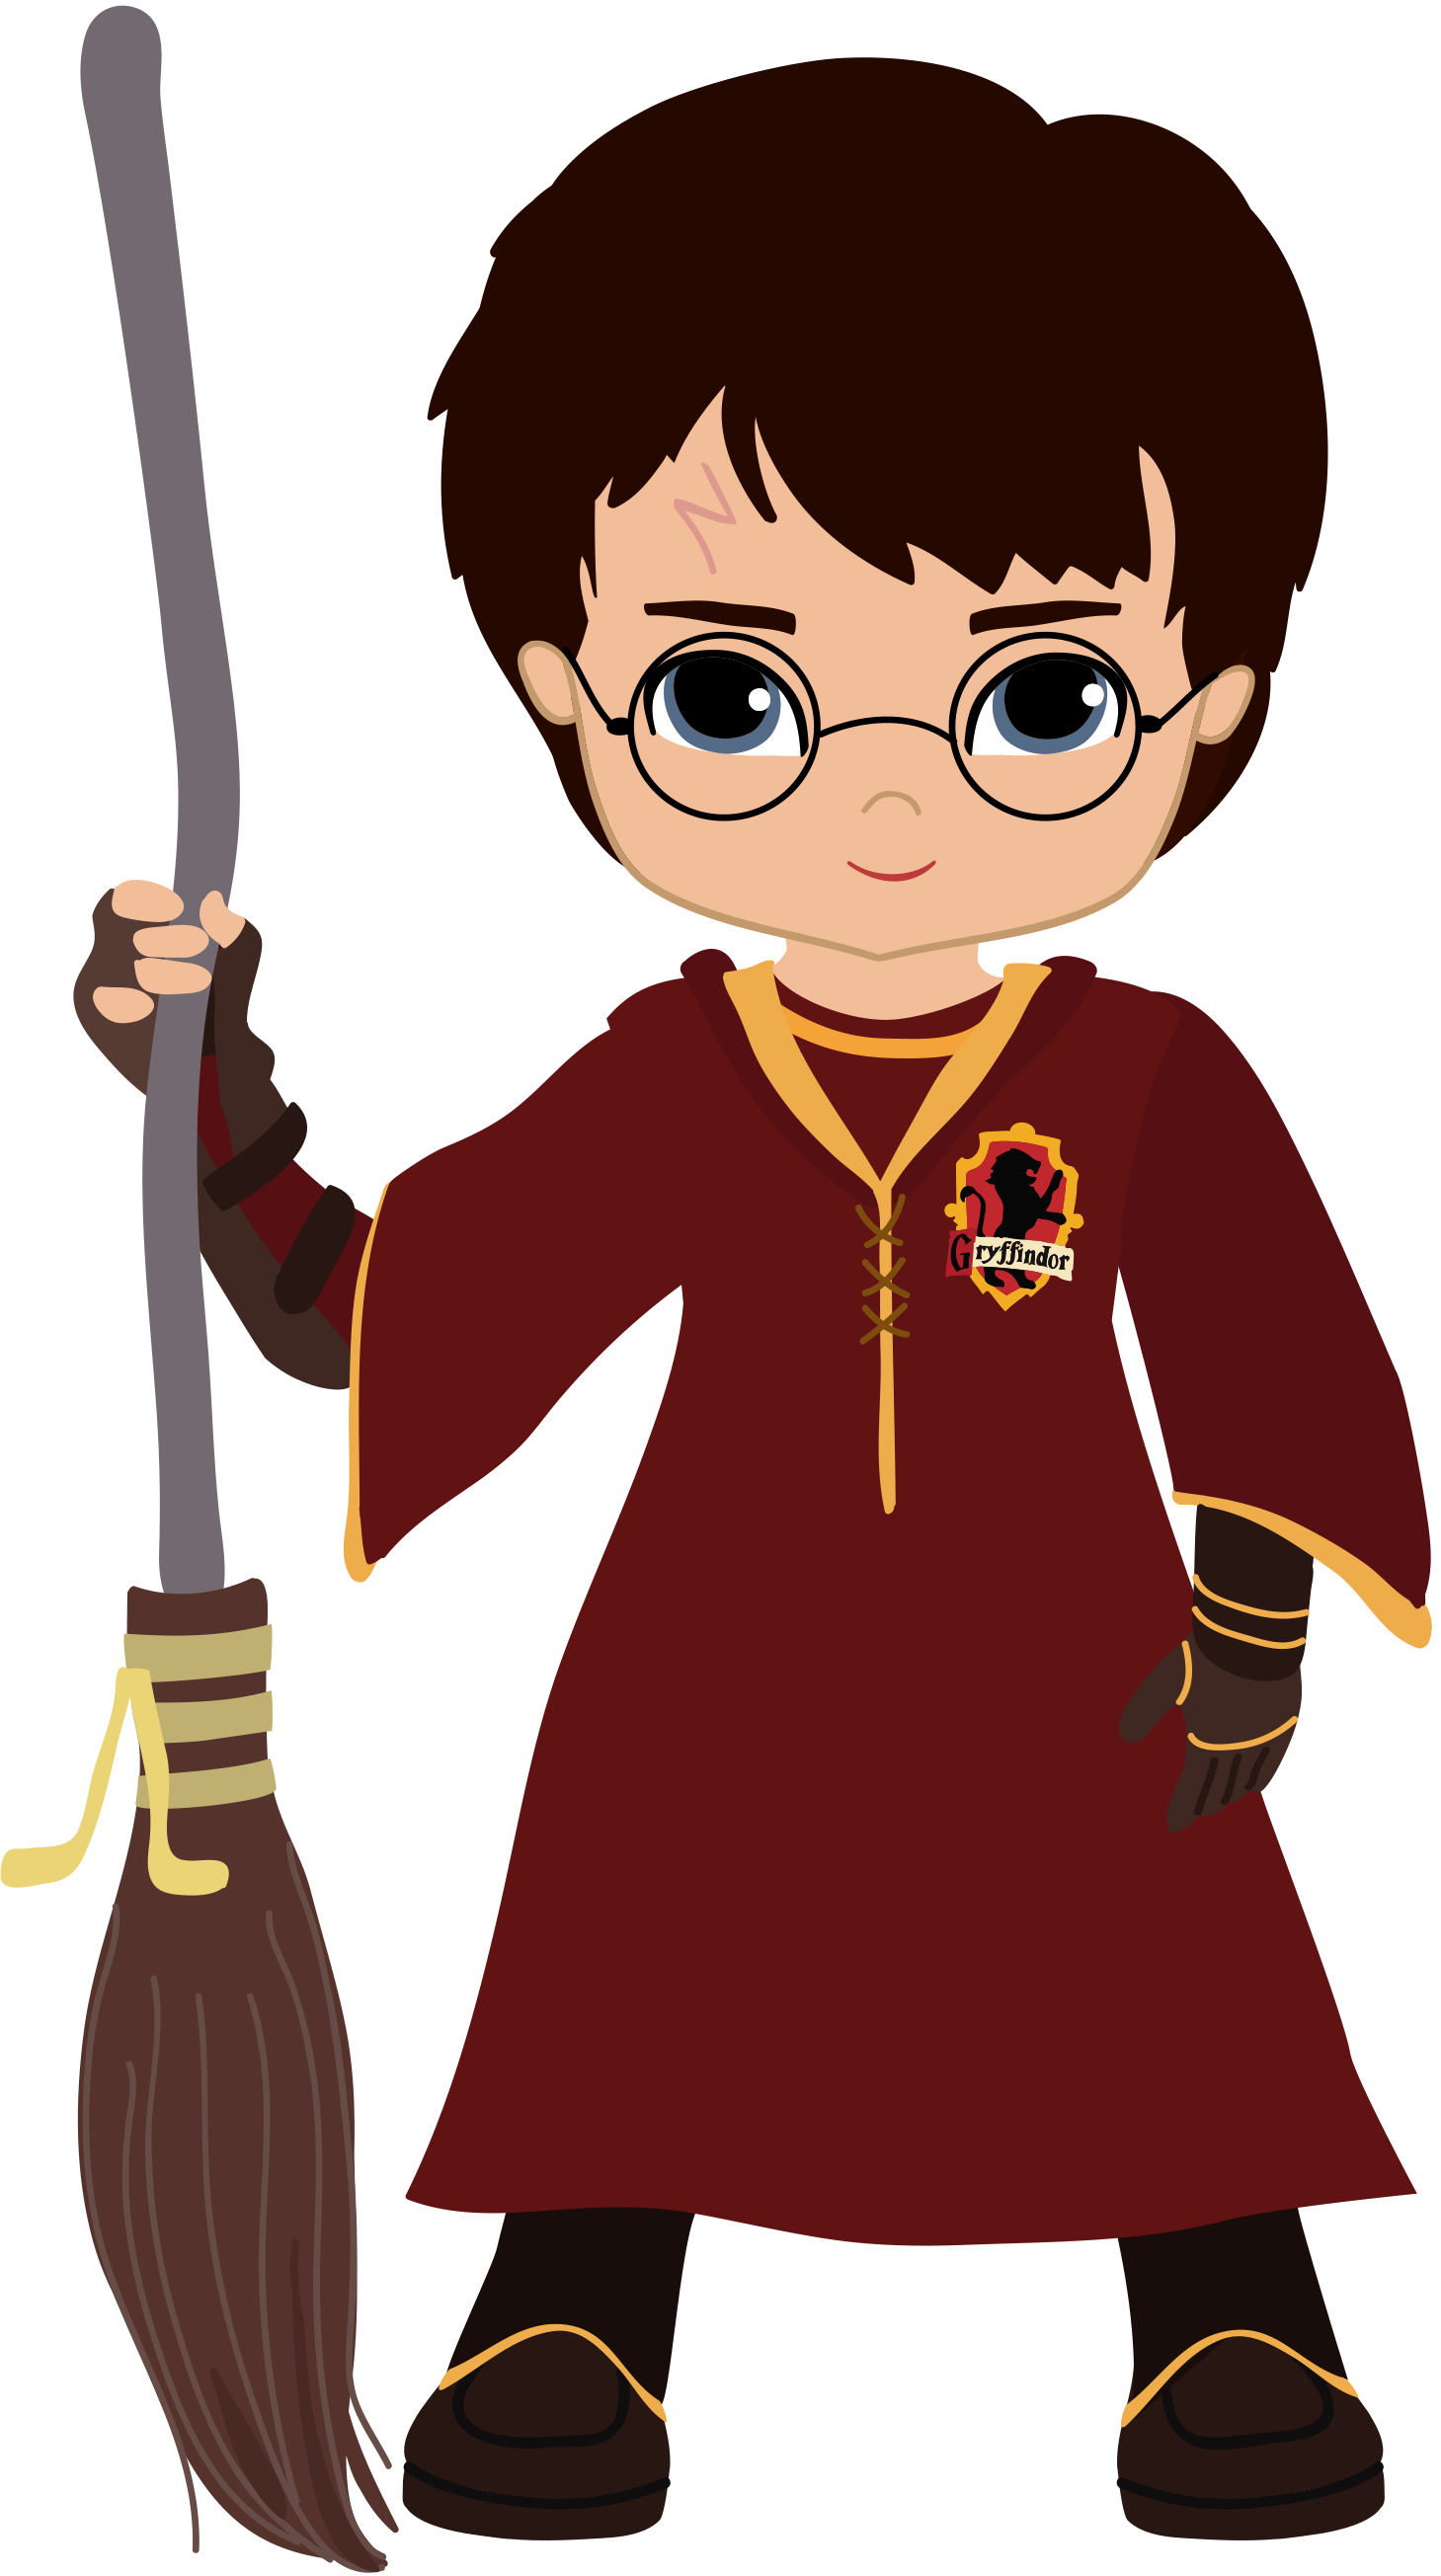 Harry potter spell book clipart svg free library Pin by annice on dibujos bonitos | Pinterest | Harry potter, Clip ... svg free library